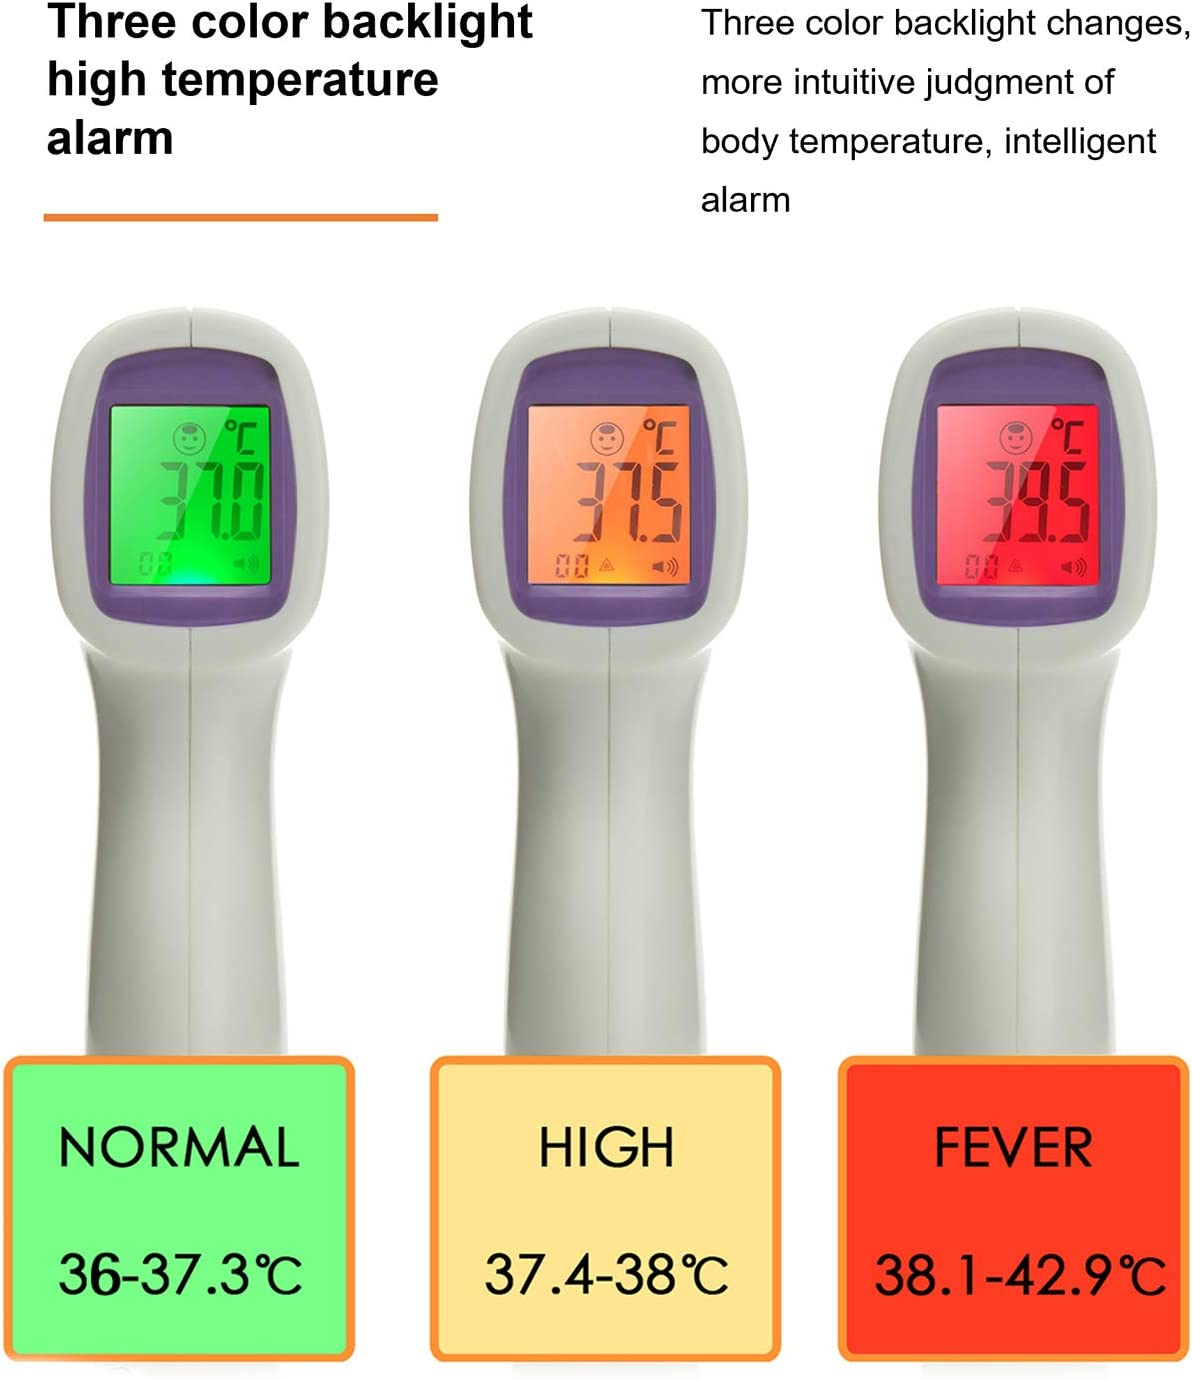 Forehead Digital Thermometer Precise Temperature Measurement with LCD Display for Children and Adults